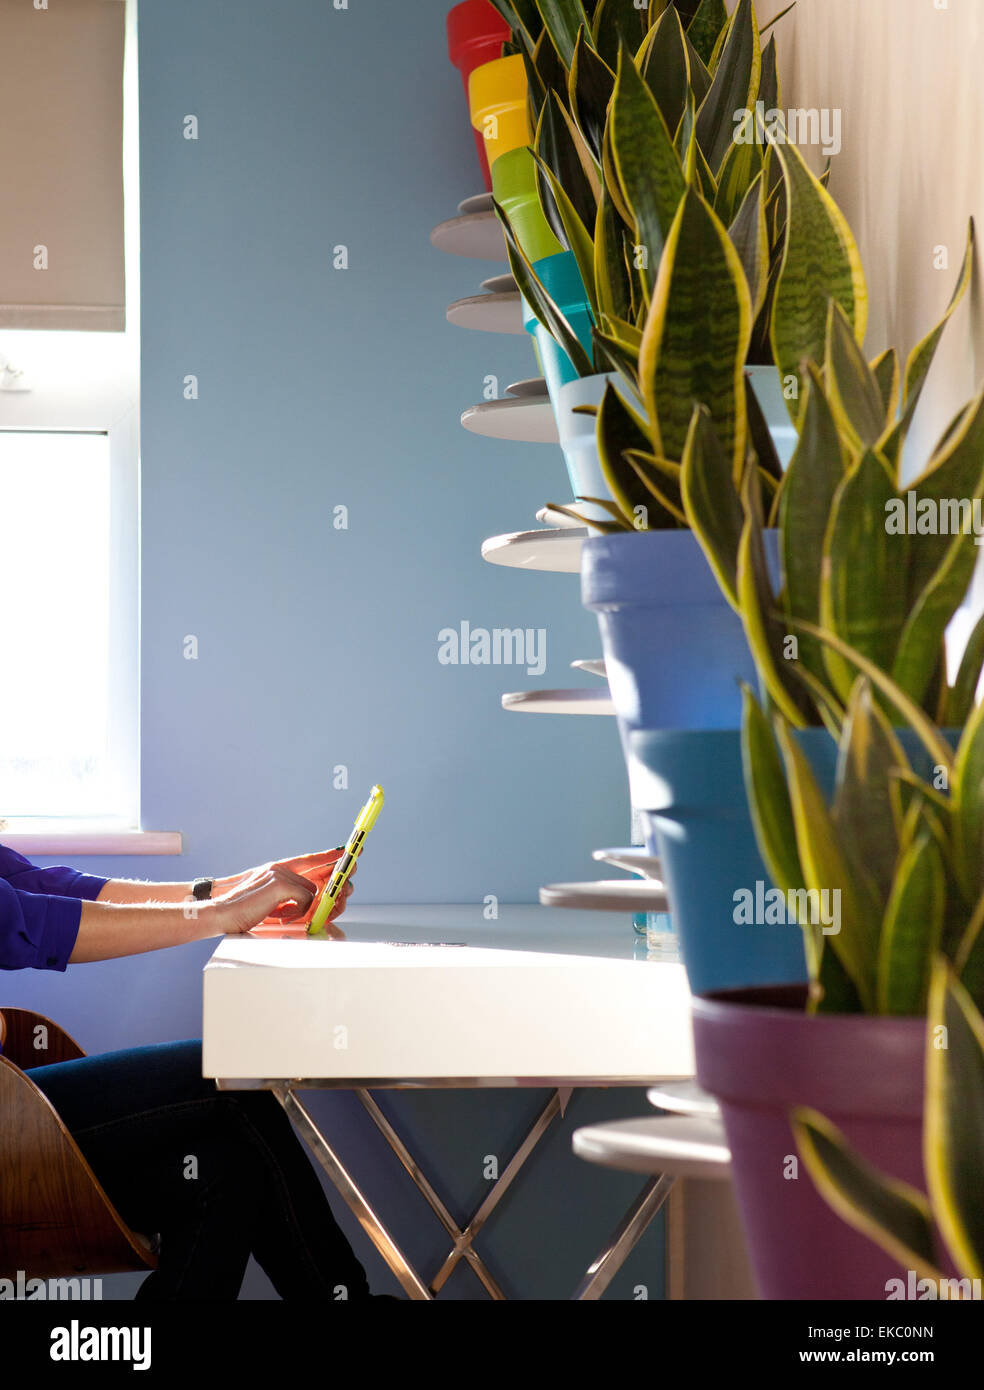 Cropped shot of woman using digital tablet in front of diagonal row of potted plants - Stock Image